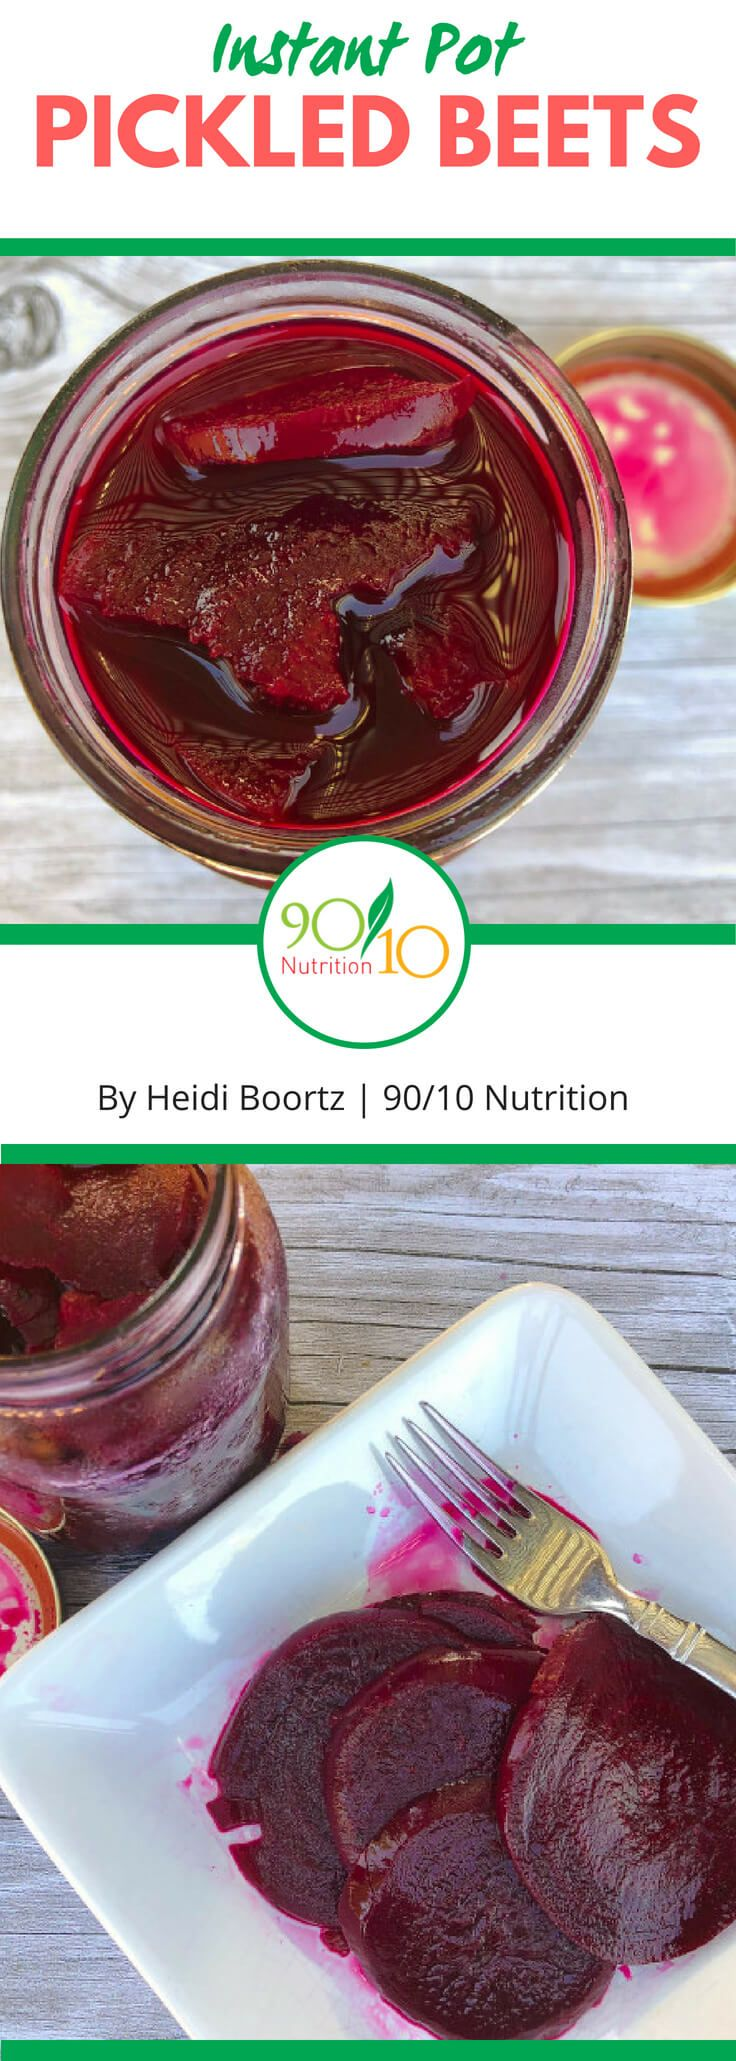 Instant Pot Pickled Beets Recipe Pickled Beets Beet Recipes